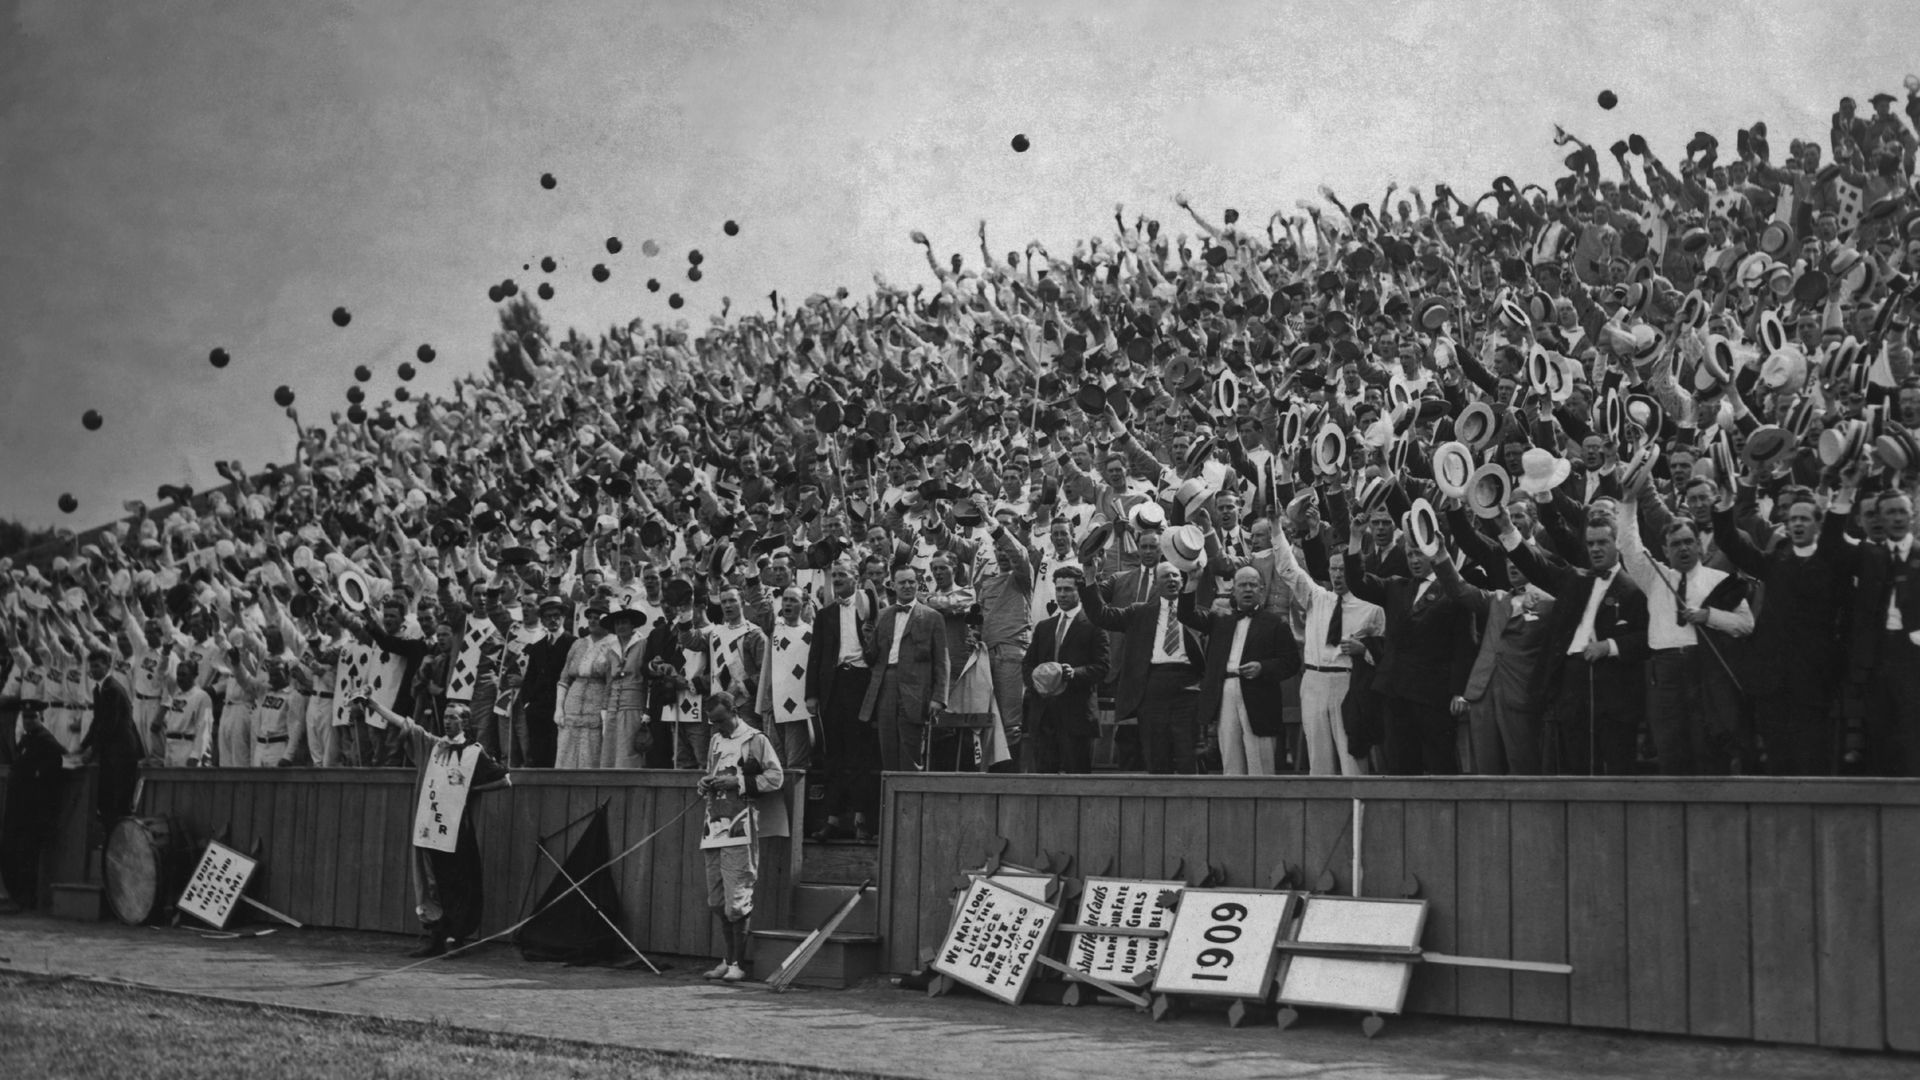 A black and white photo of college graduates throwing caps into the air